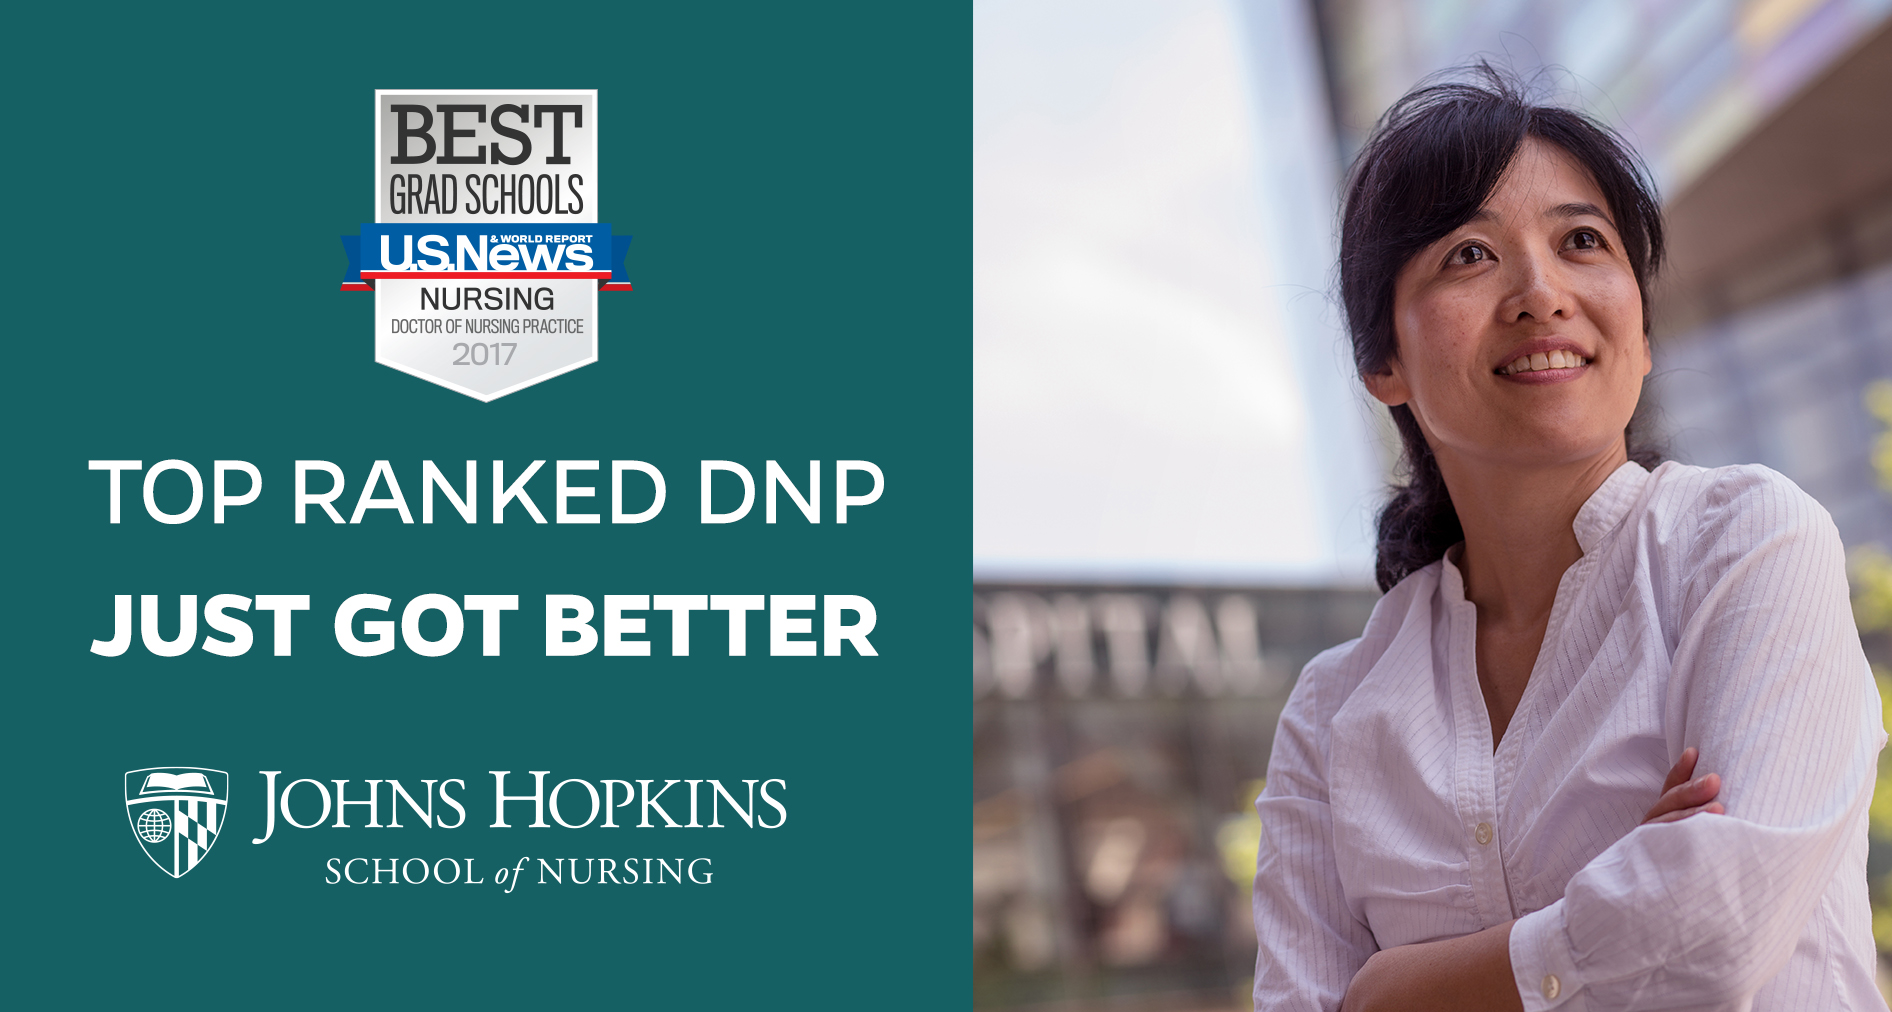 #2 Ranked DNP (Doctor of Nursing Practice) at Johns Hopkins School of Nursing Just got better.